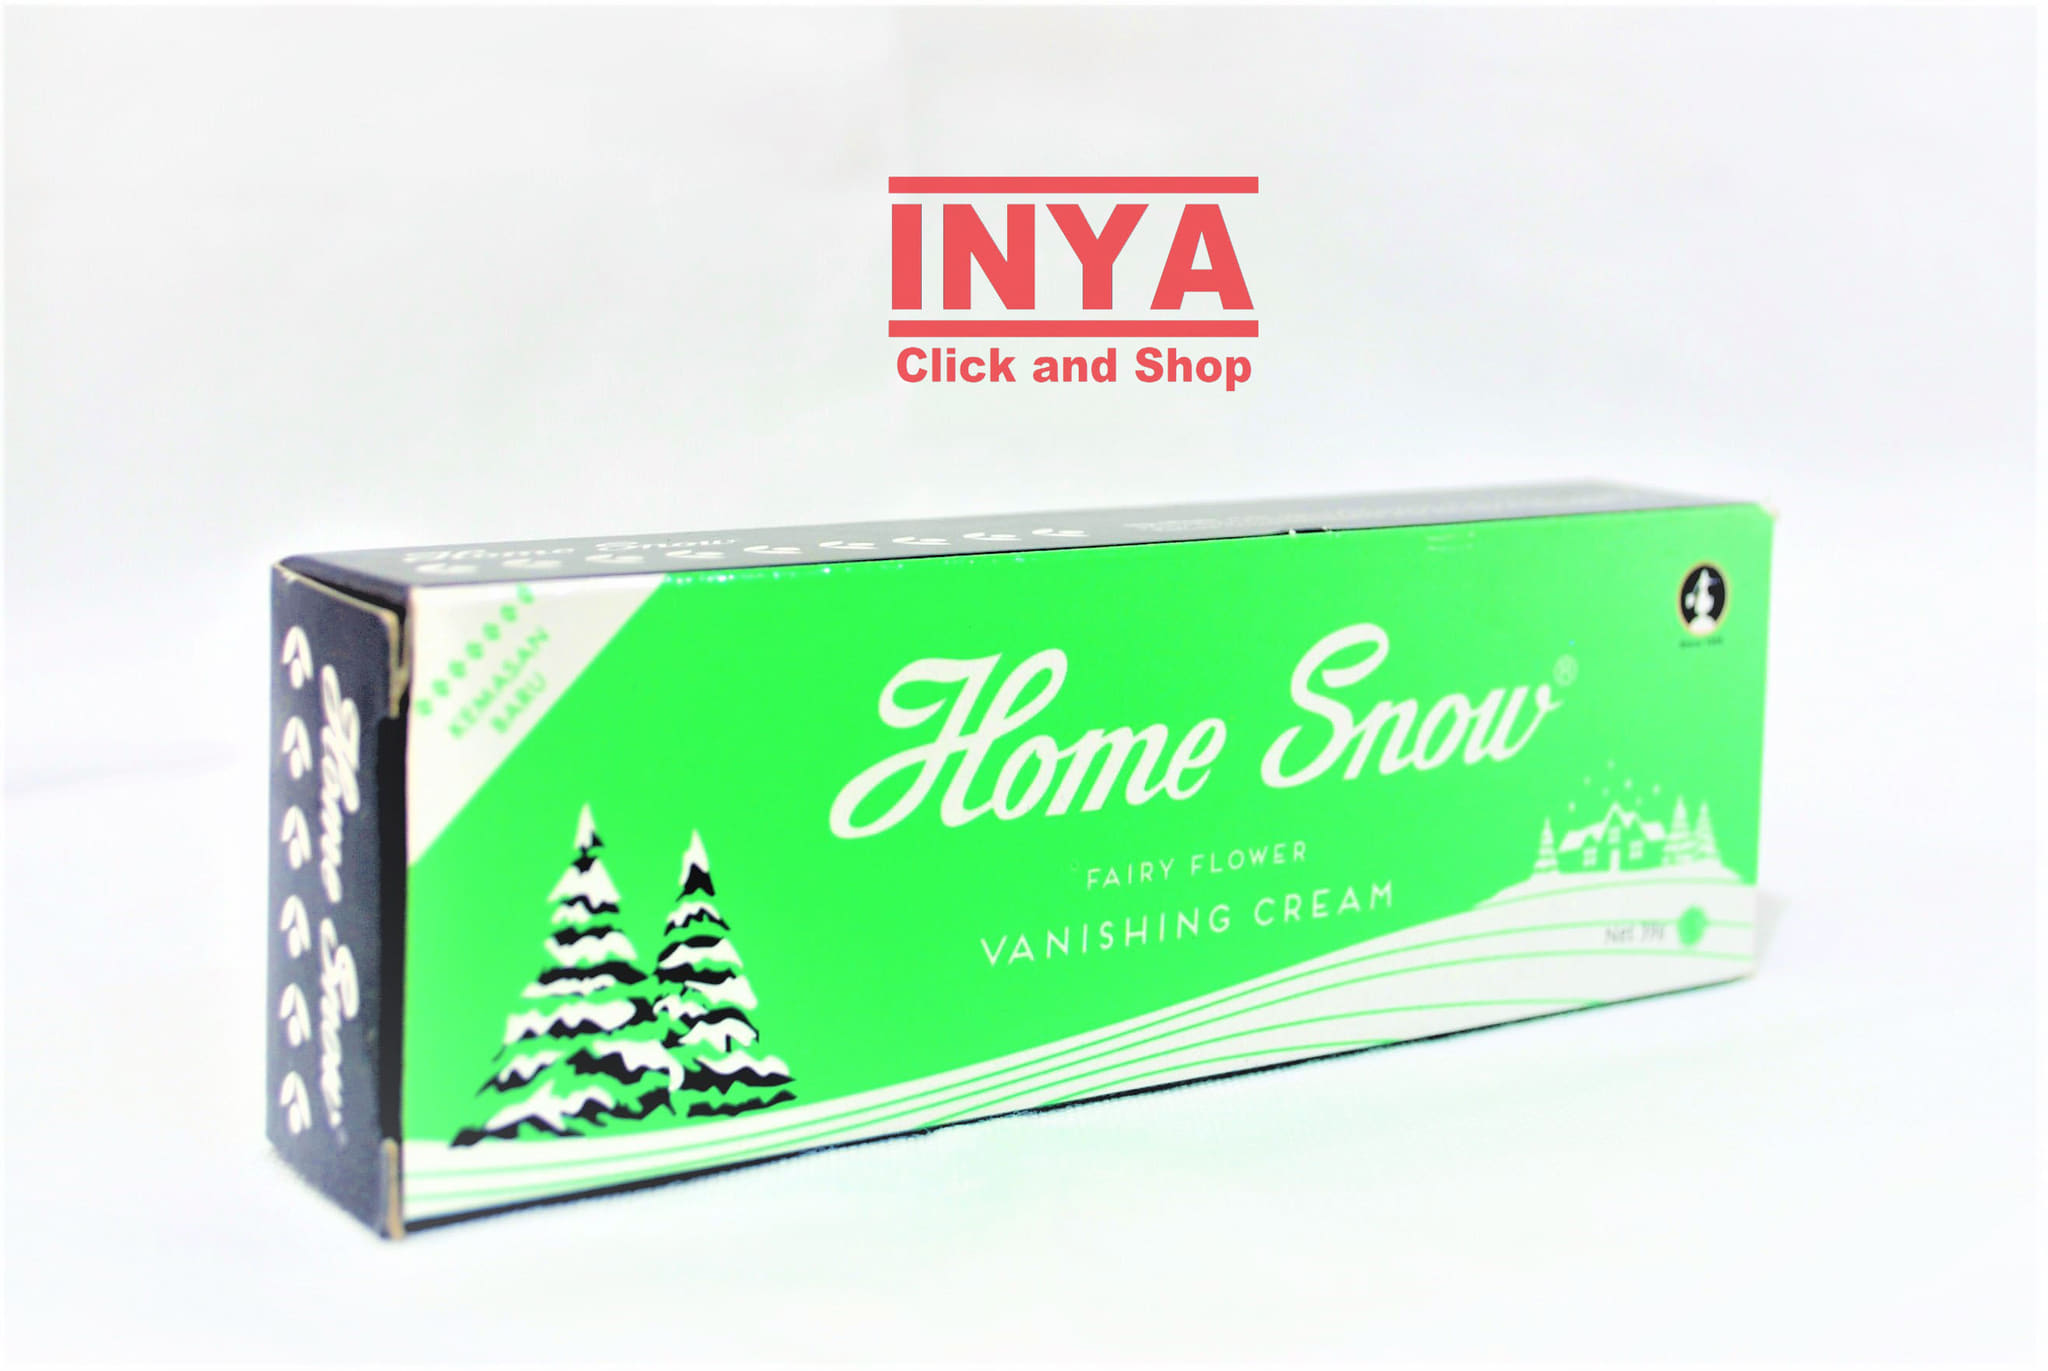 Home Snow Fairy Flower Vanishing Cream 39gr Daftar Harga Terbaru Hn Crystal Serum Gold Jual Krim Muka Inya Living Tokopedia